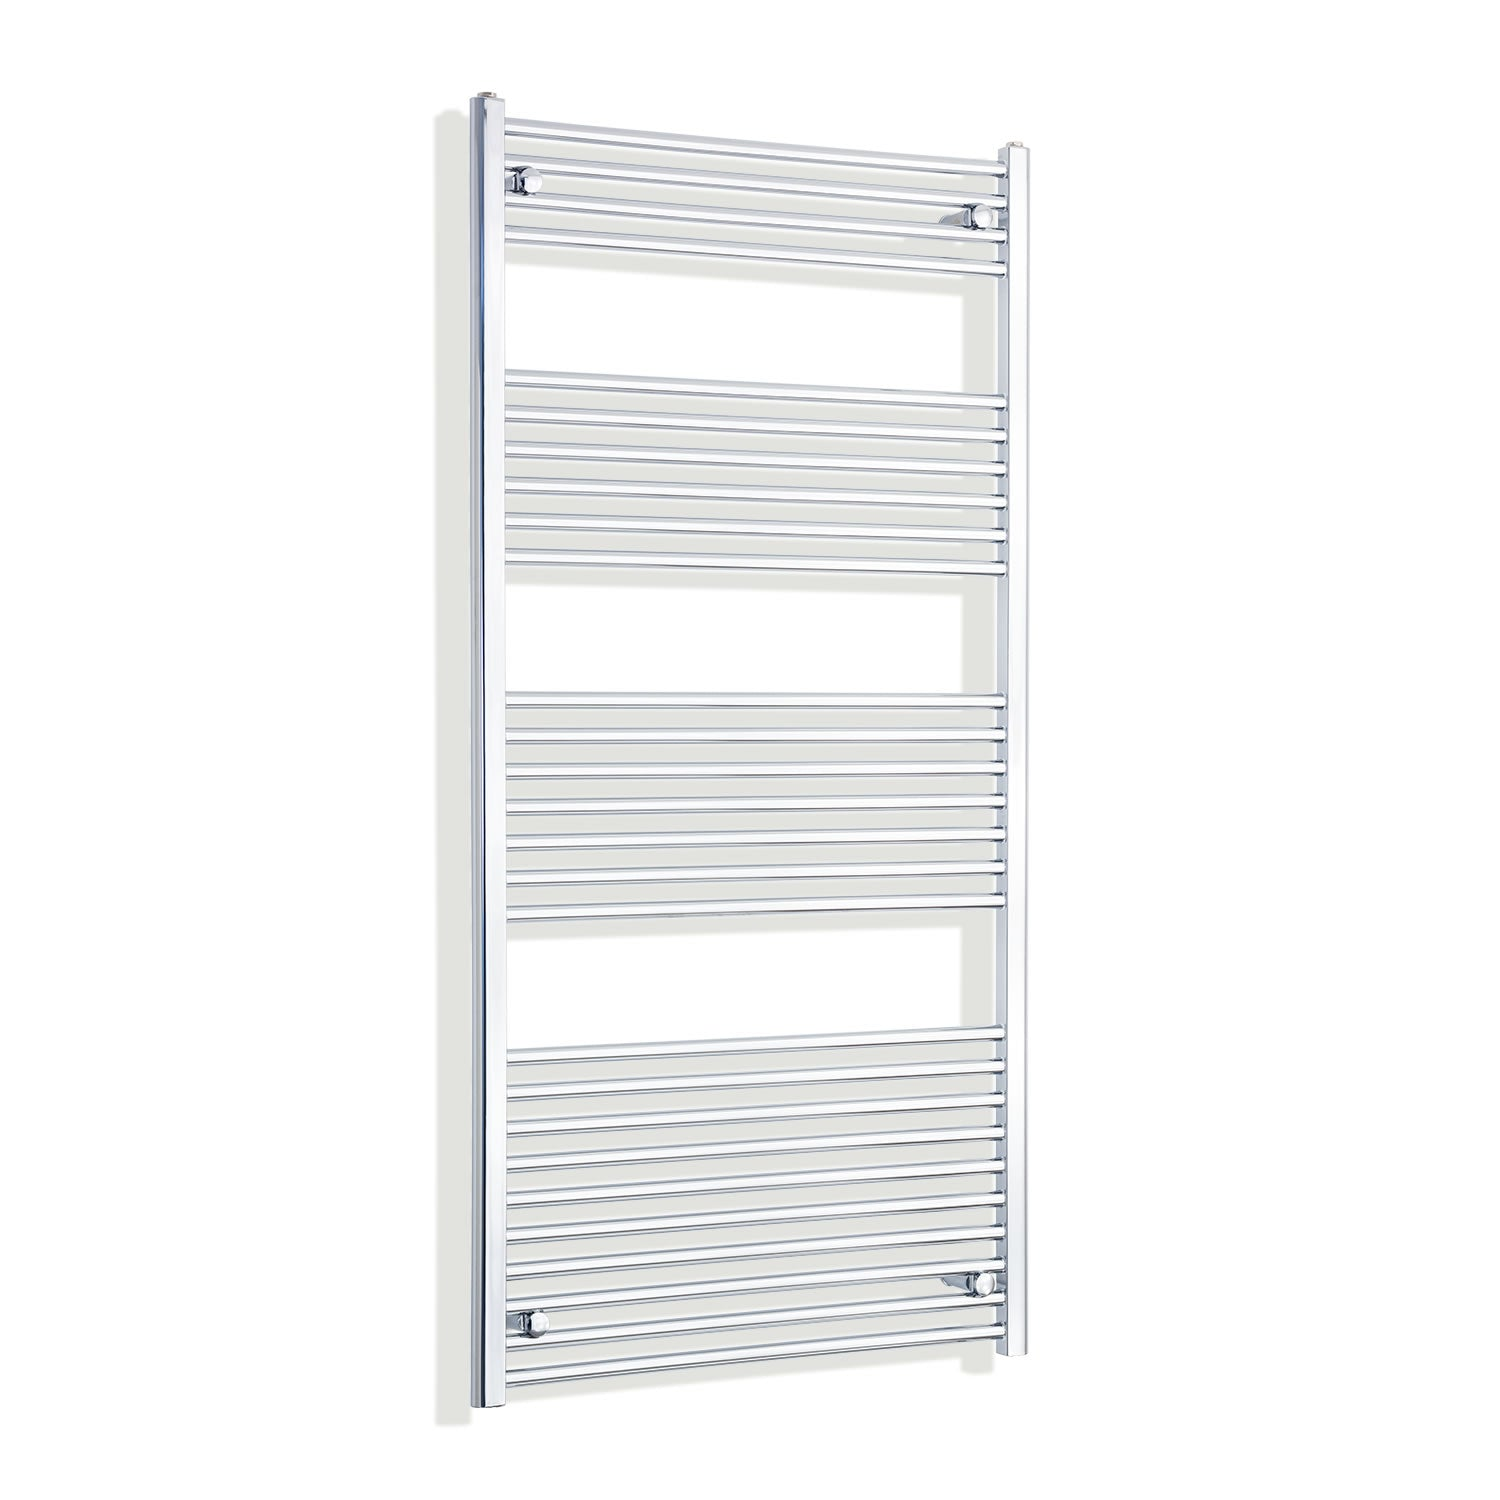 850mm Wide 1600mm High Chrome Towel Rail Radiator